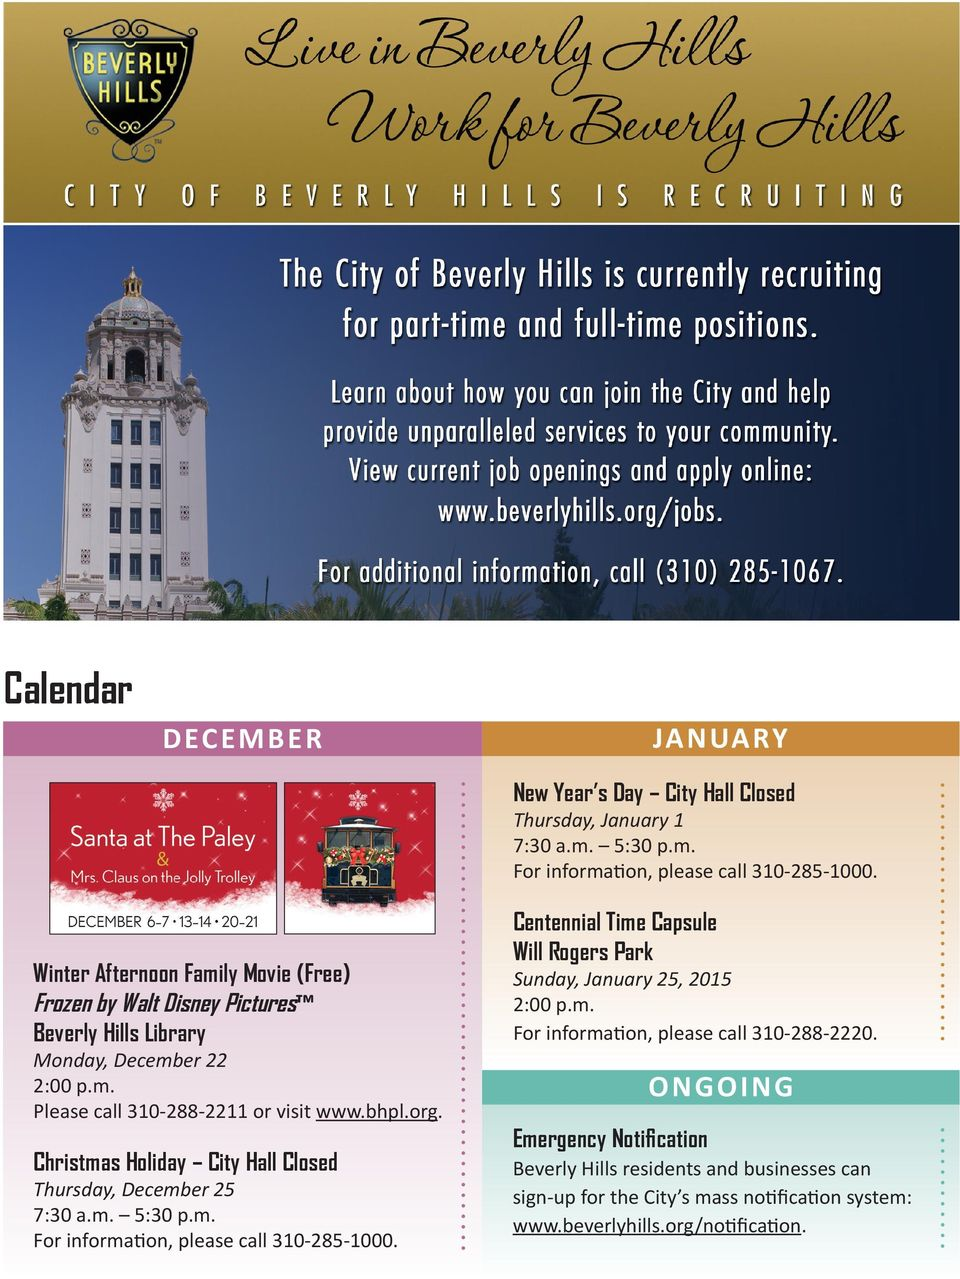 Christmas Holiday City Hall Closed Thursday, December 25 7:30 a.m. 5:30 p.m. For information, please call 310-285-1000.